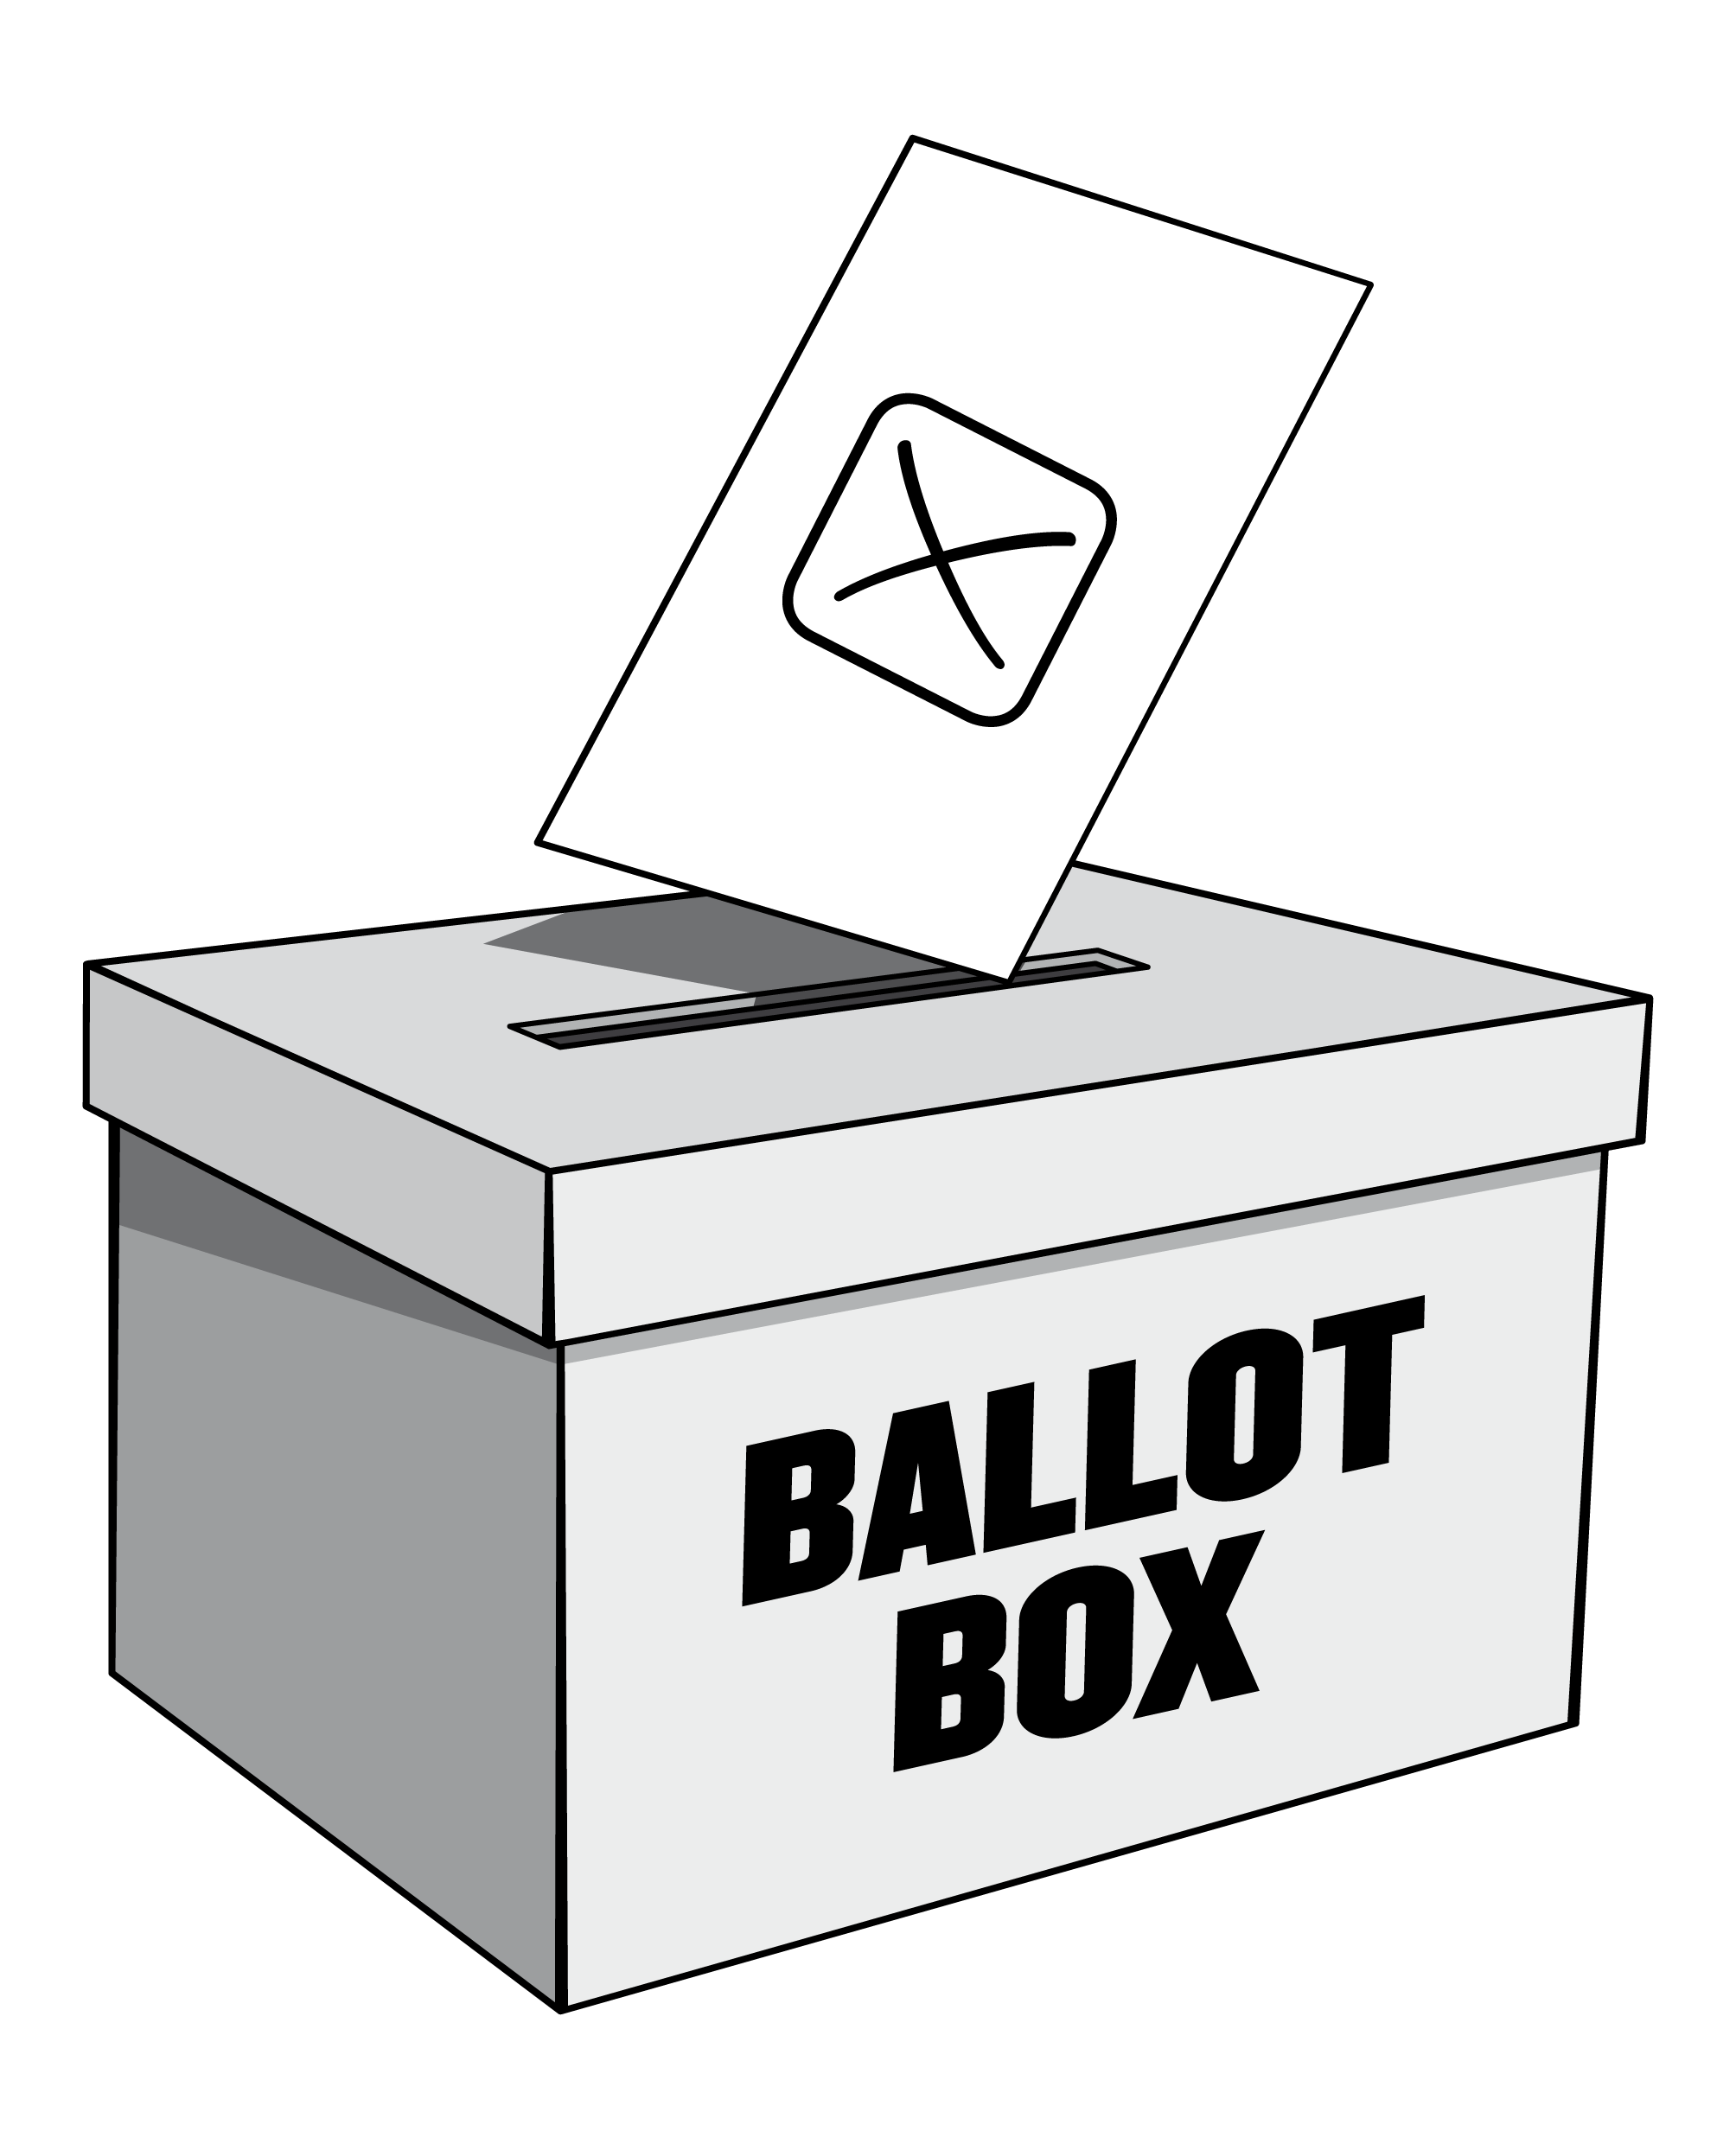 Polling day lancashire county. Voting clipart raffle box